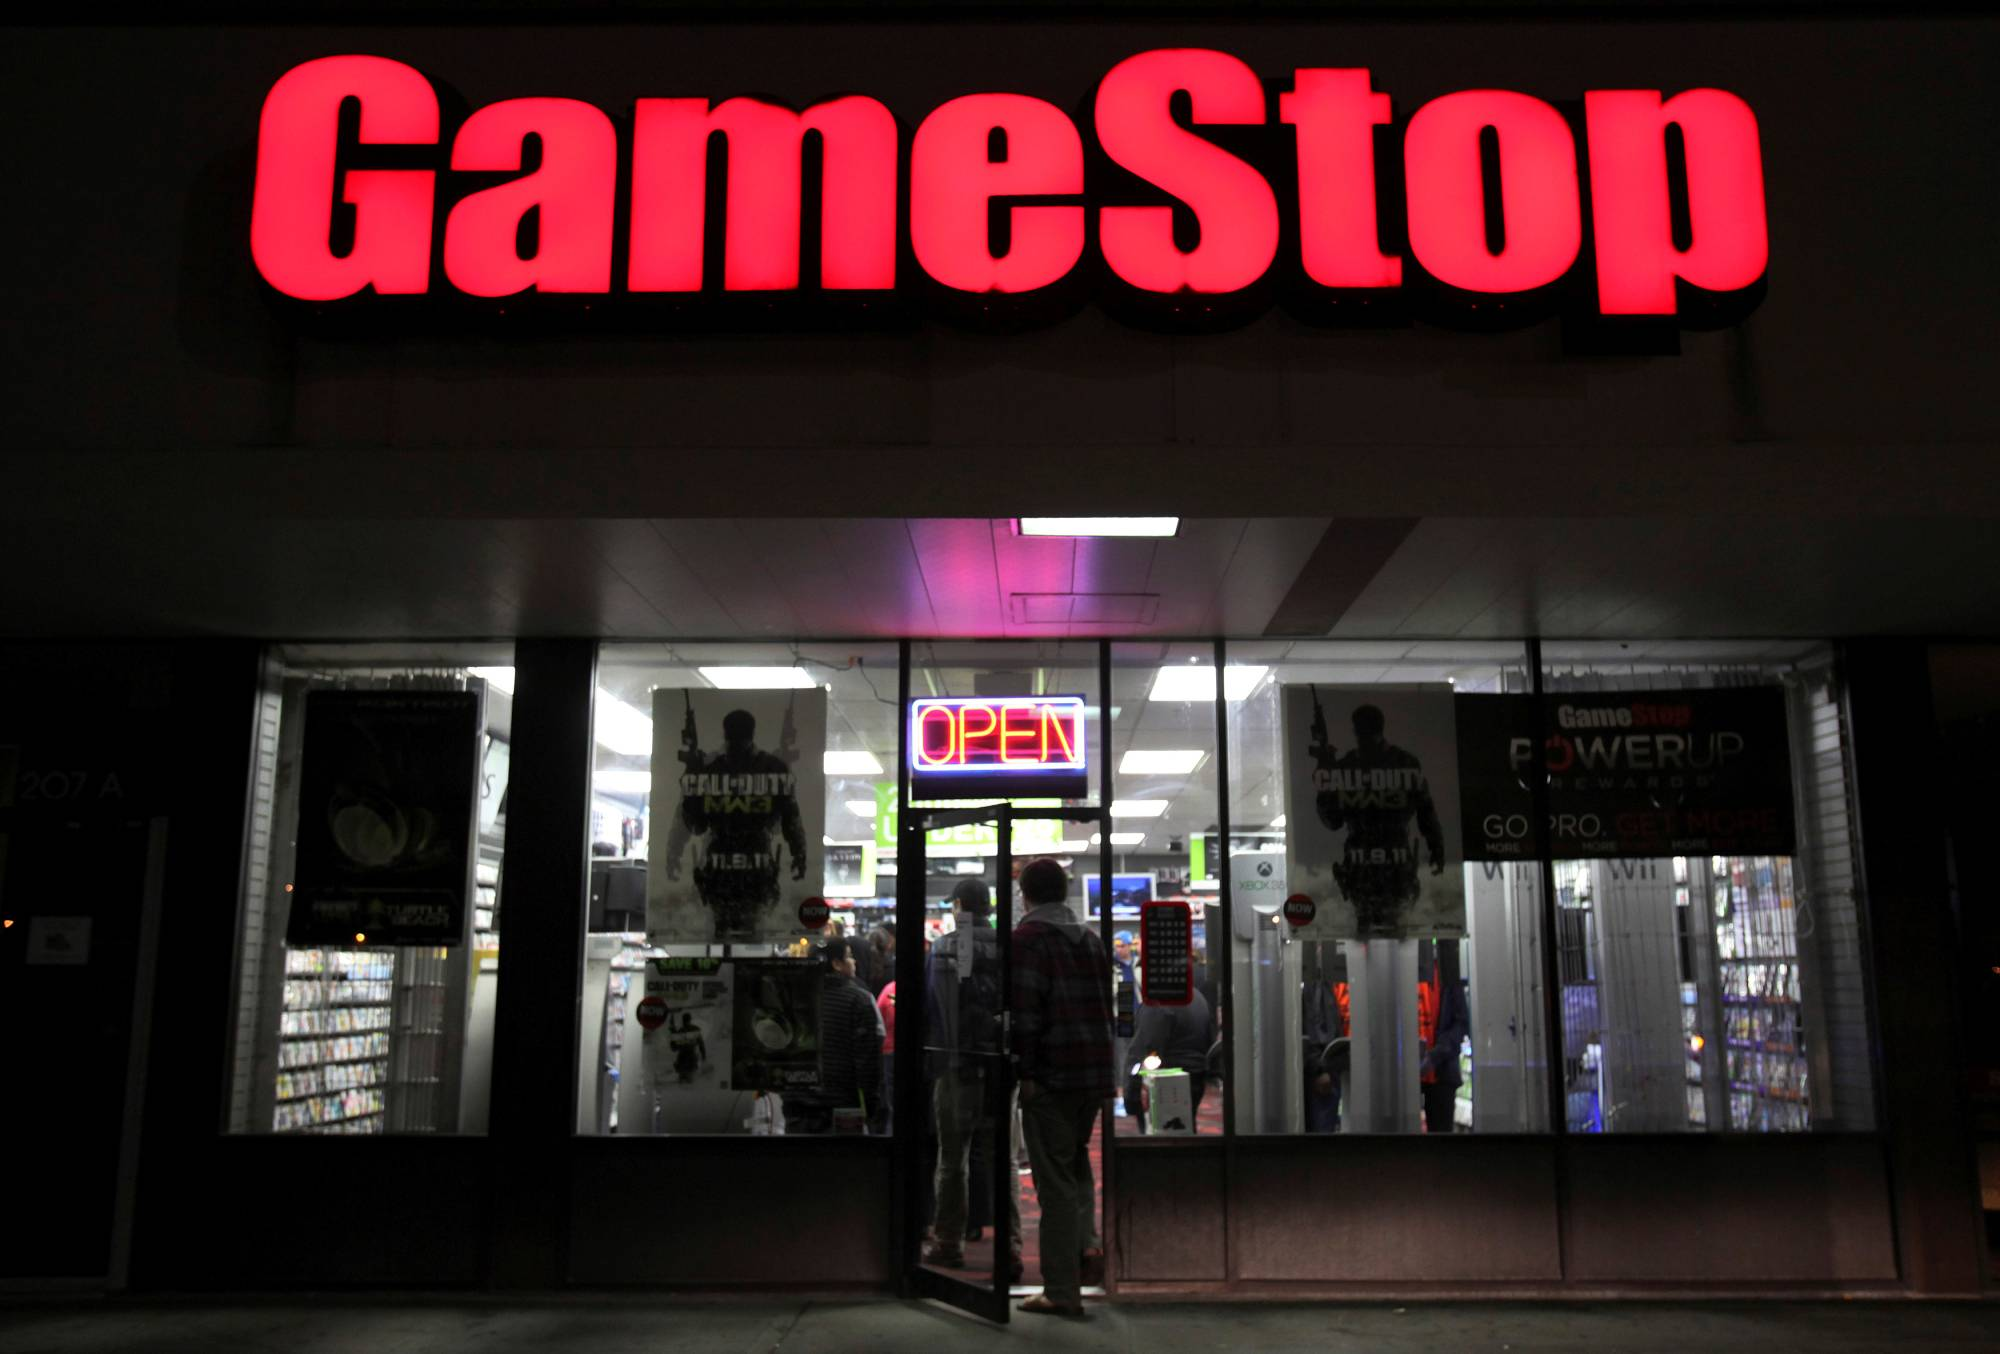 GameStop shares recovered some losses to end the day down 44%. The shares then rebounded significantly in the after-hours trading session, after Robinhood said it would